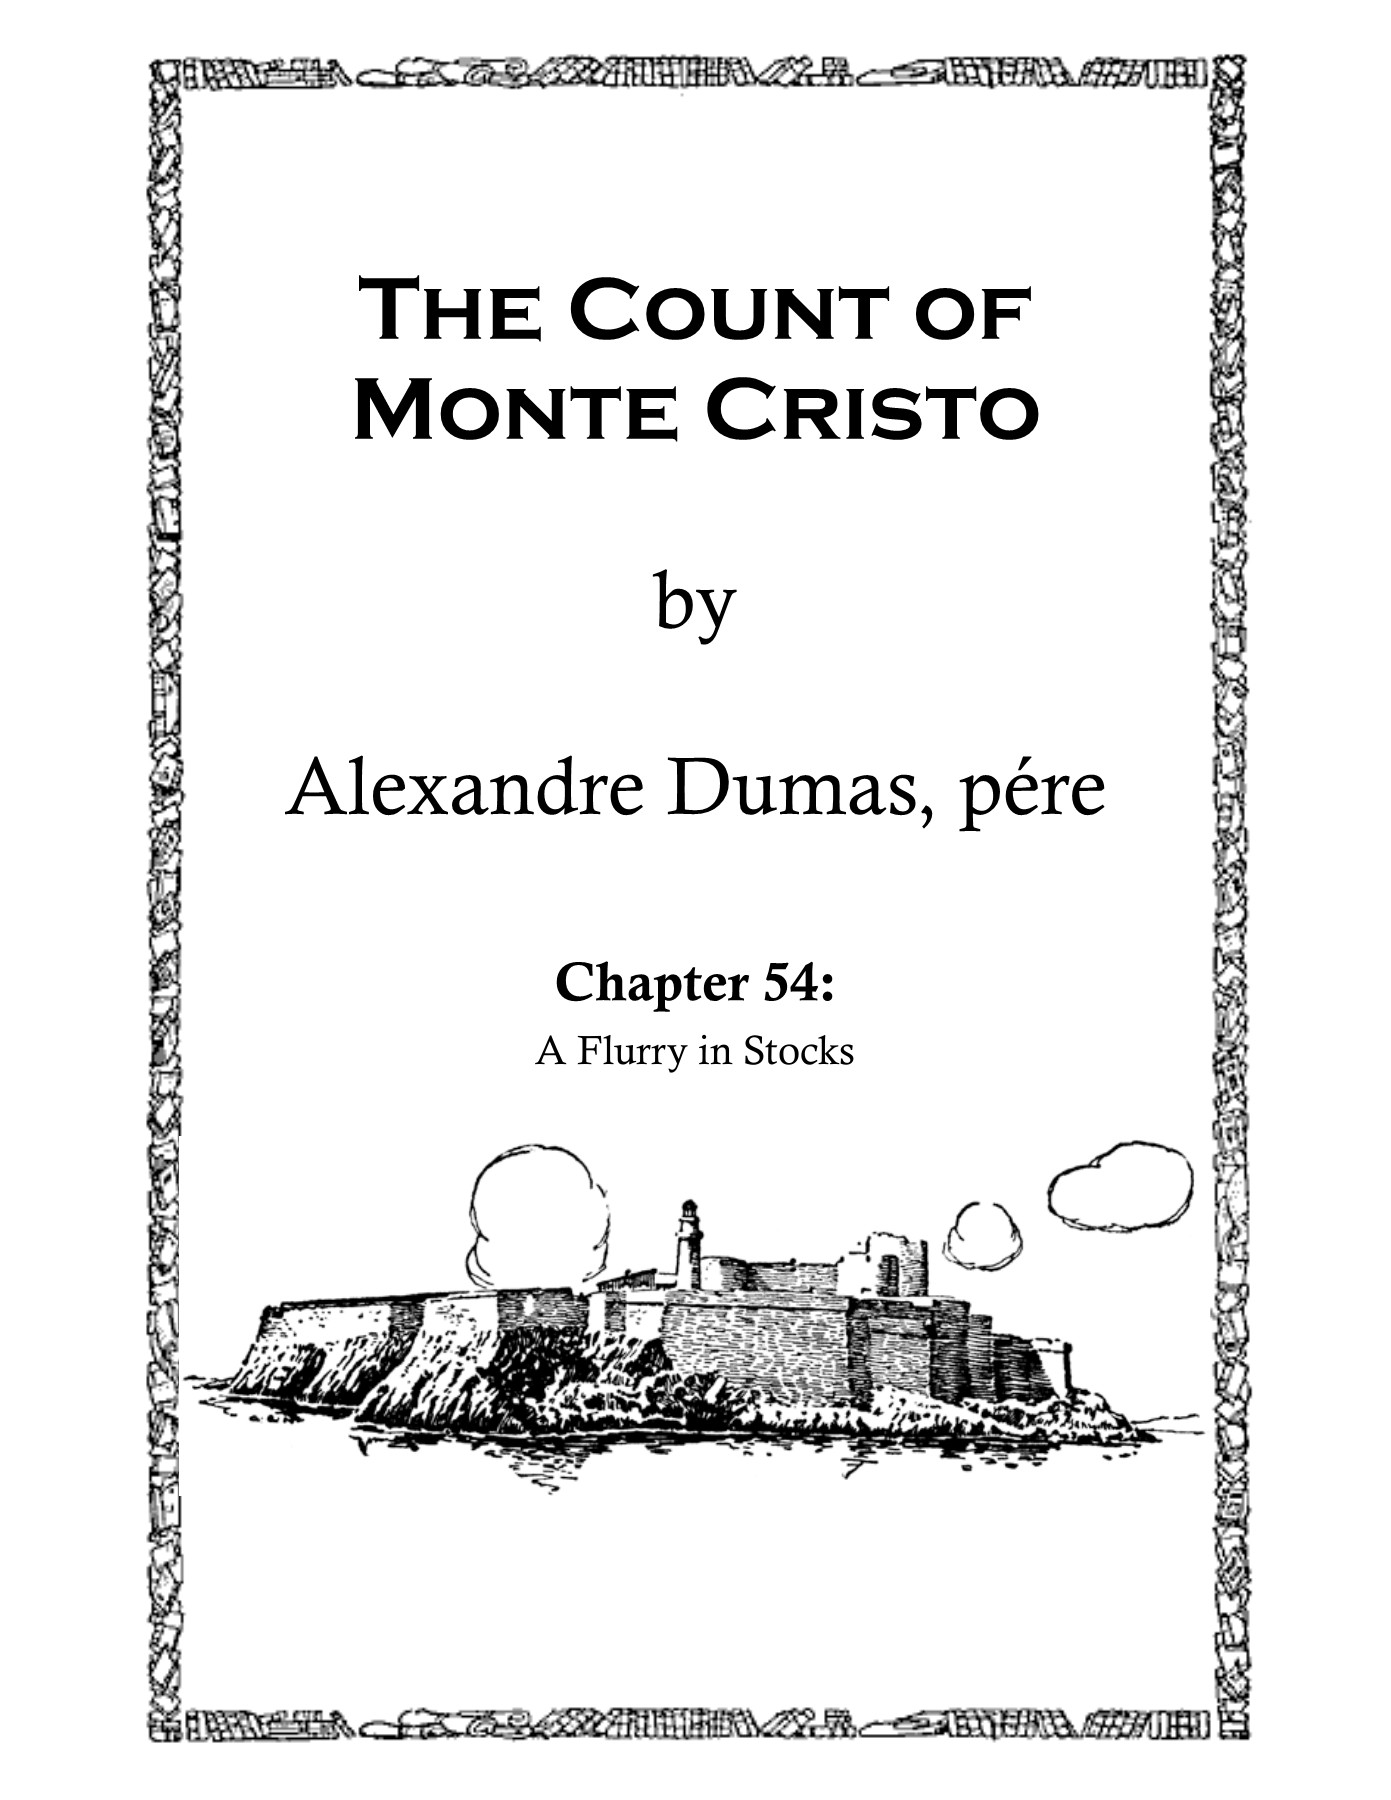 The Count Of Monte Cristo Etc Usf Edu Pages 1 16 Text